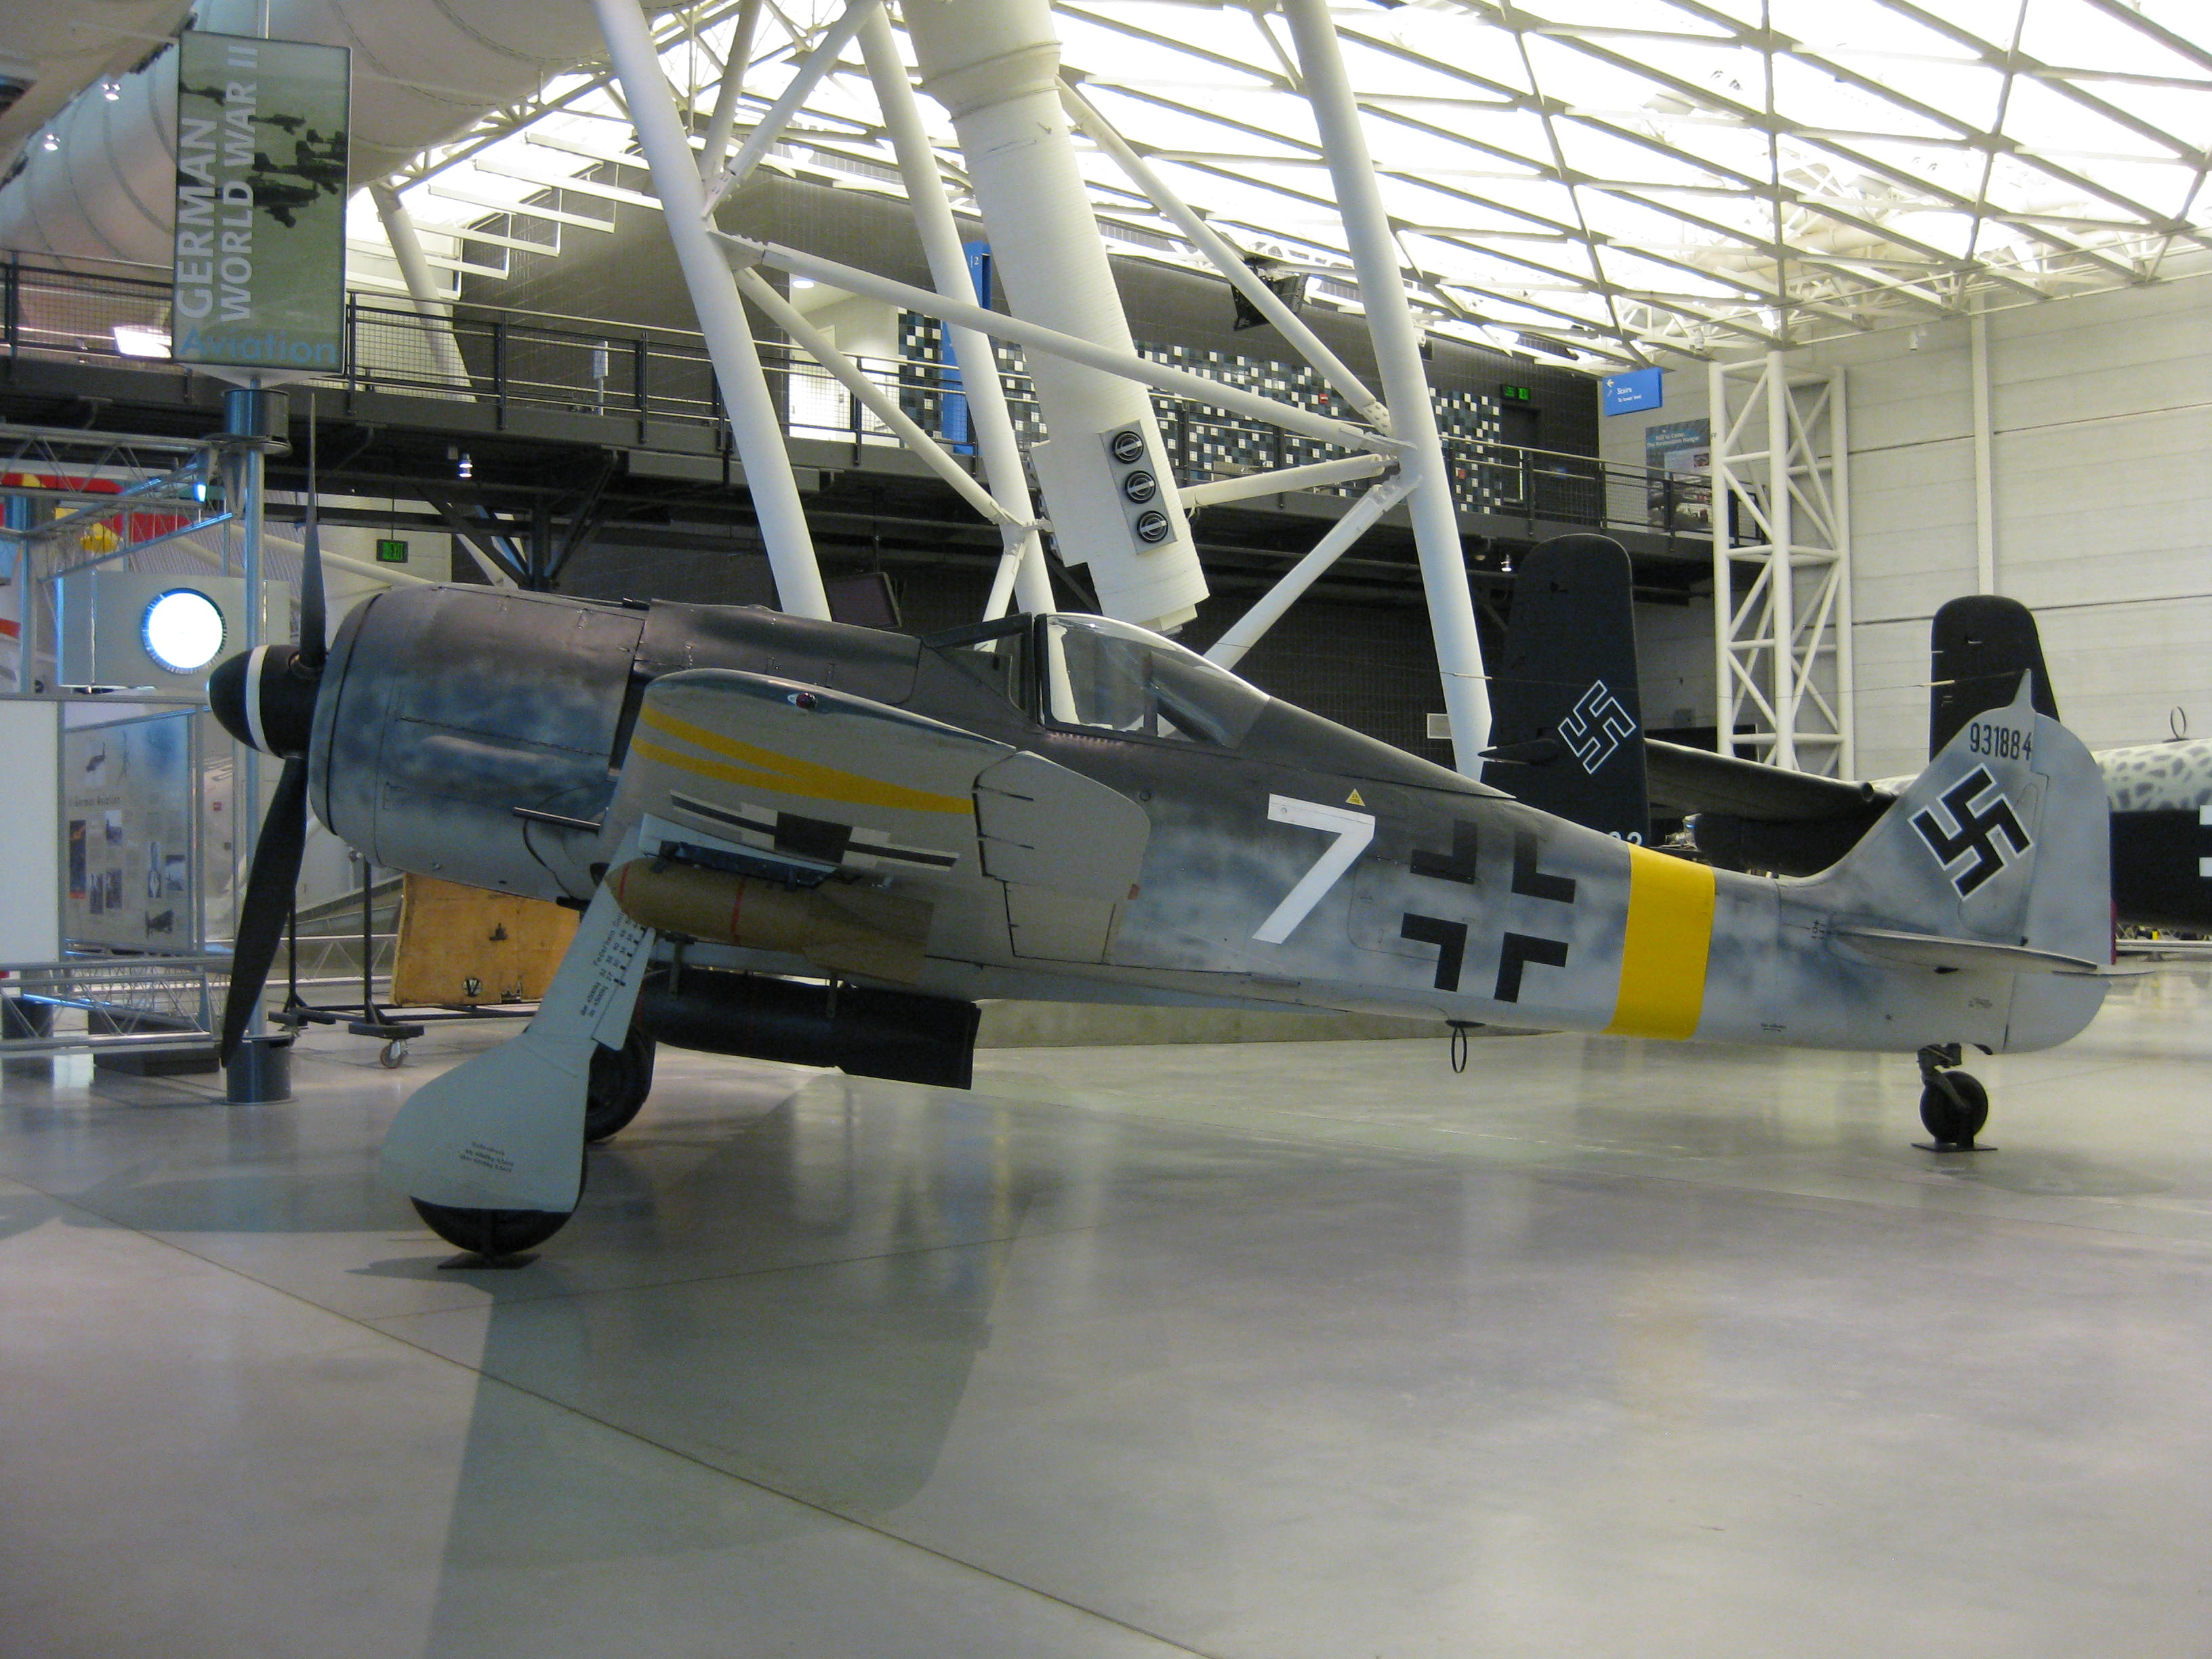 FW-190 fighter bomber at the Steven F. Udvar-Hazy Center. Nick-D, Wikimedia Commons, CC BY-SA 3.0